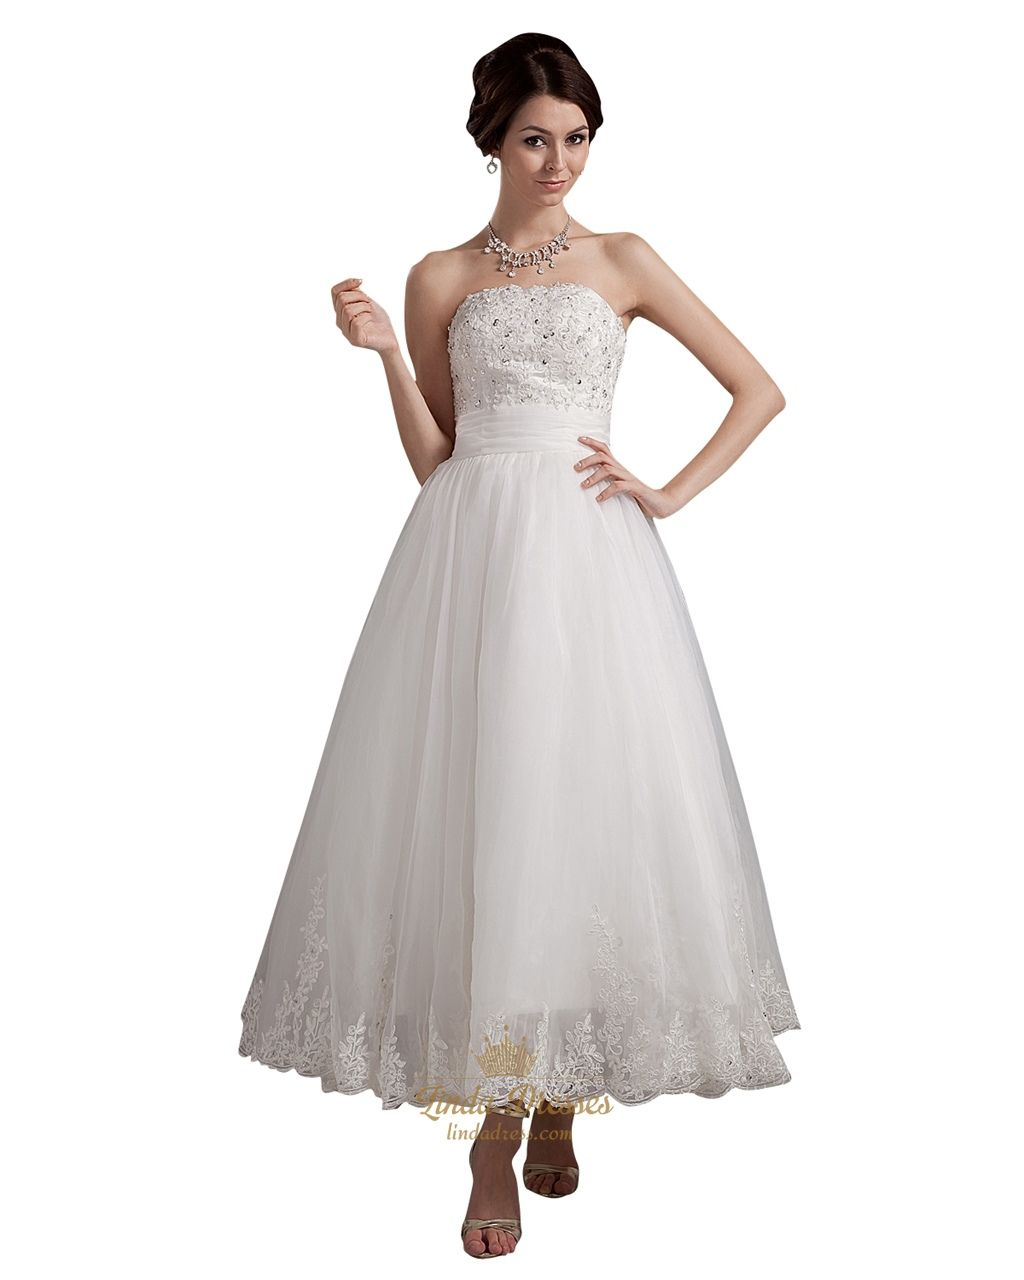 Wedding dress without train   Wedding Dress without Train  Dressy Dresses for Weddings Check